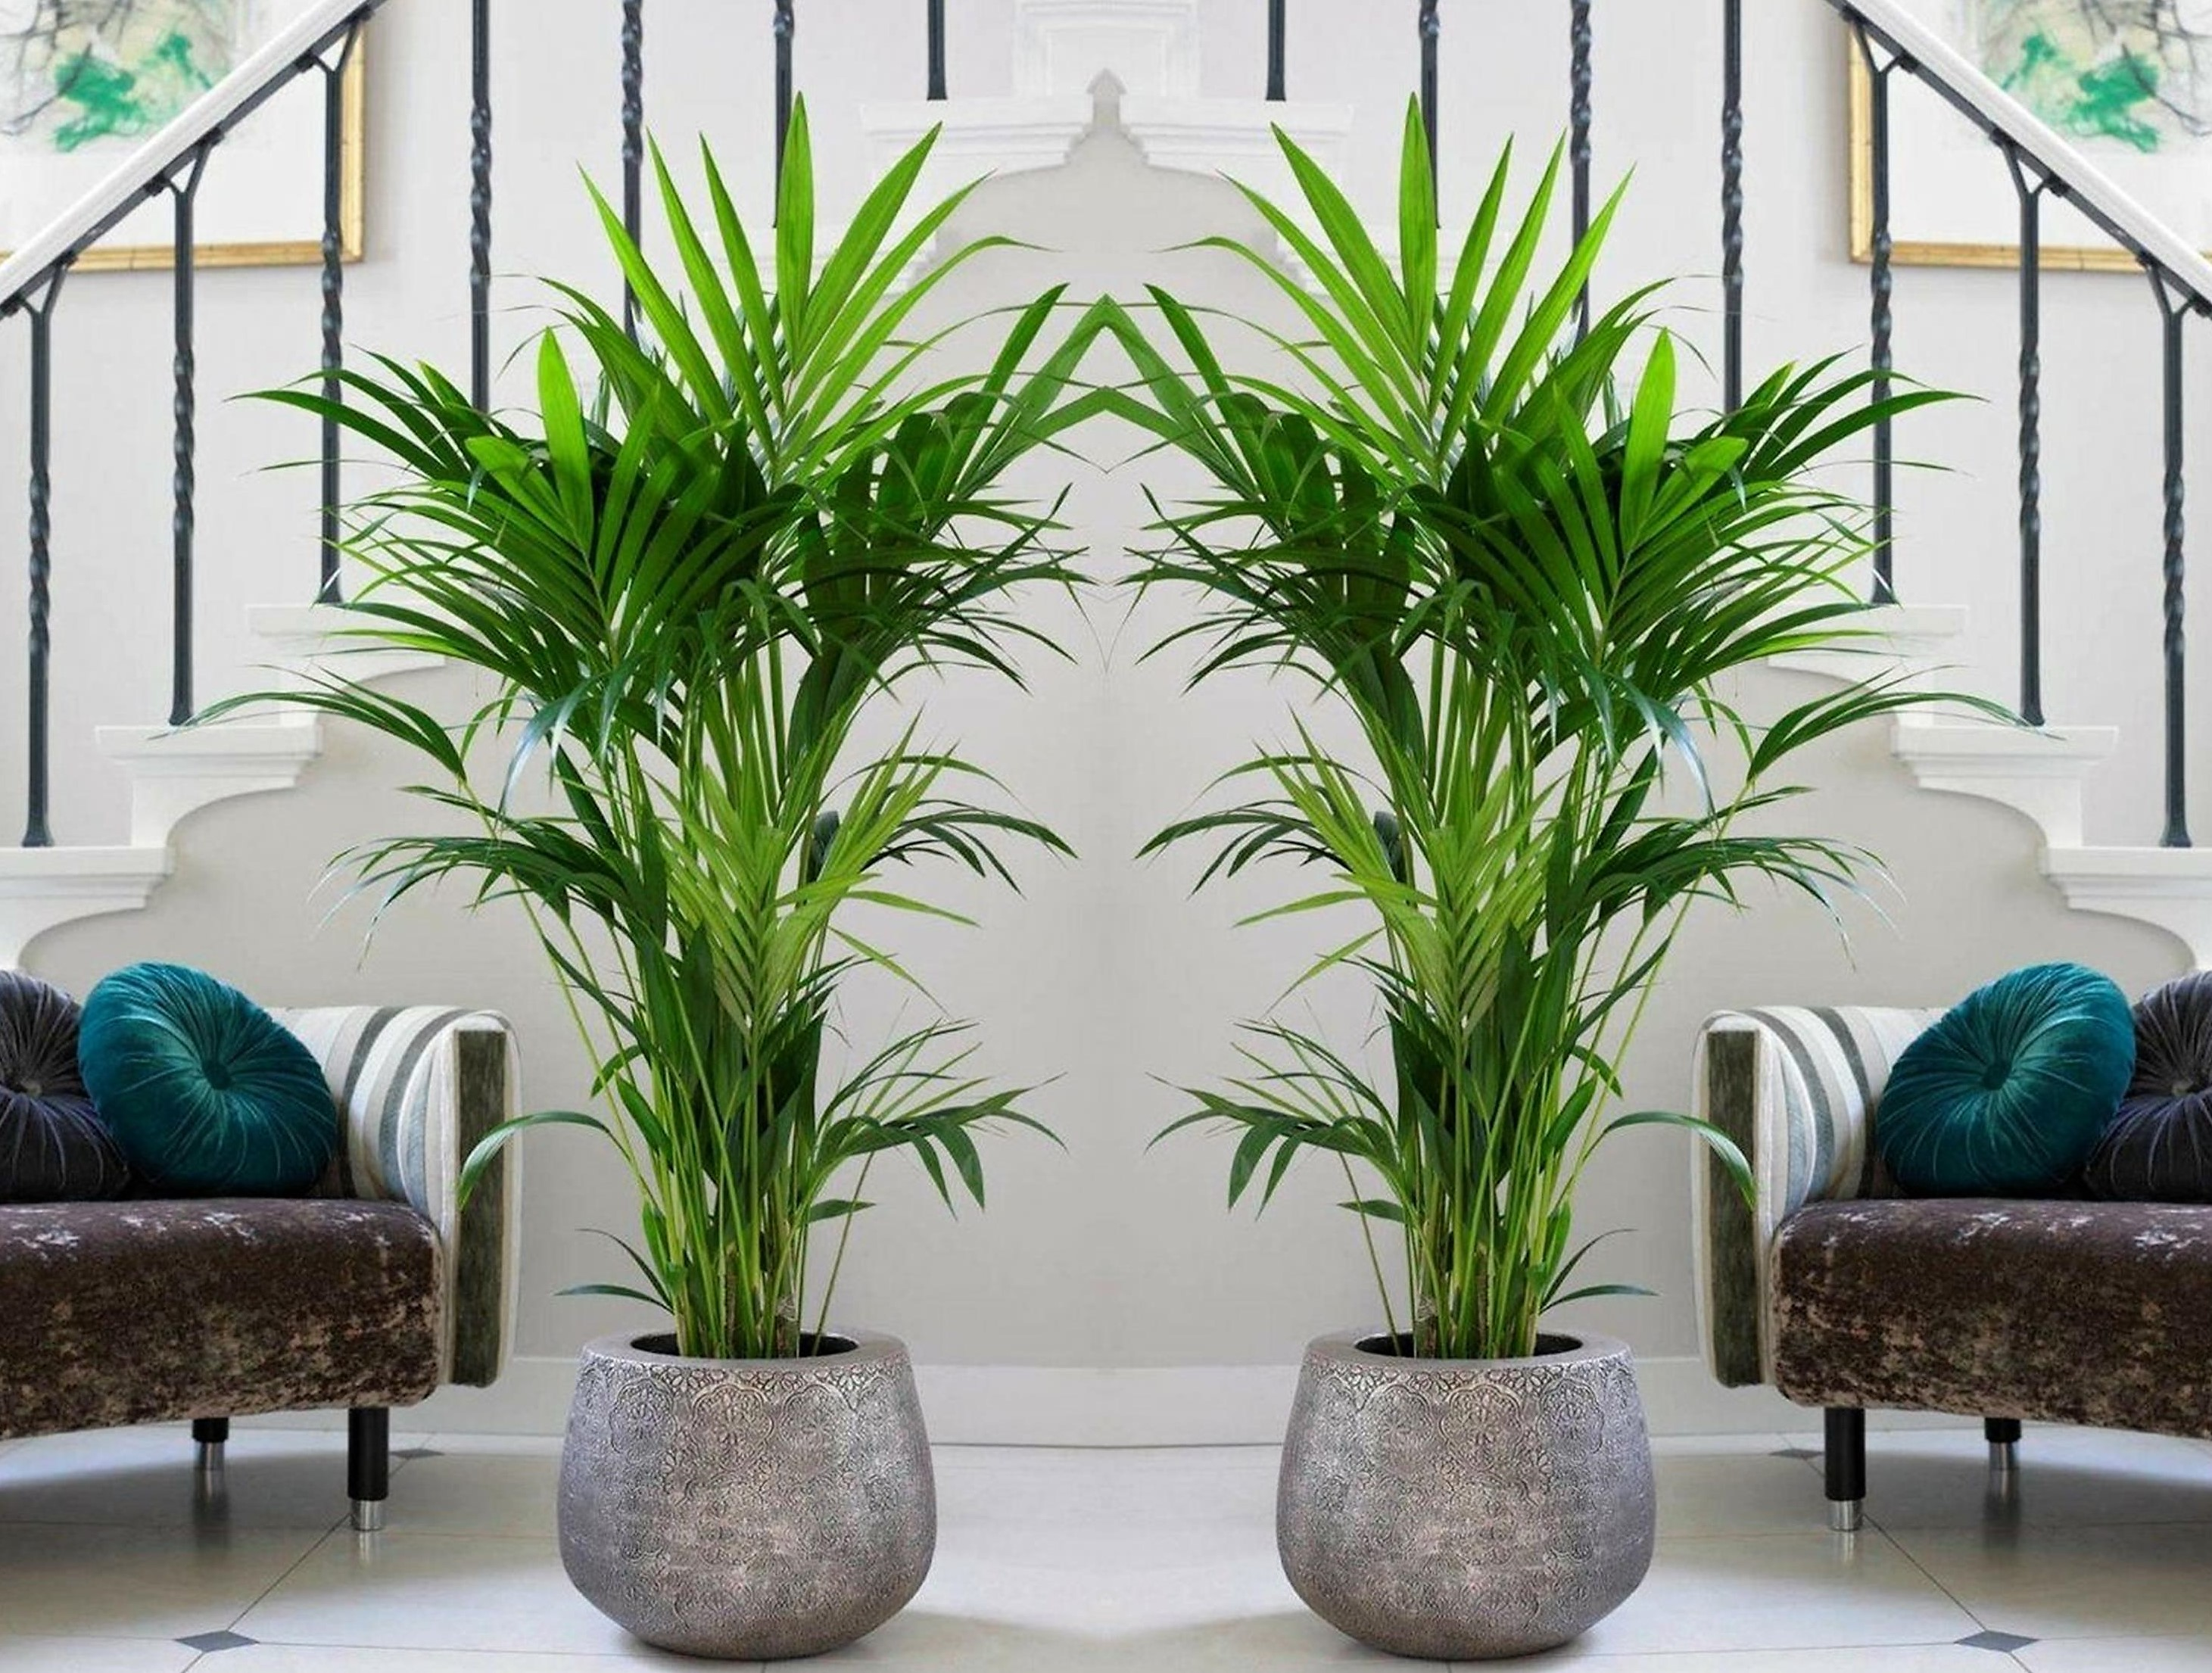 15 Best Low Light Indoor Trees You Can Grow Easily - The ...